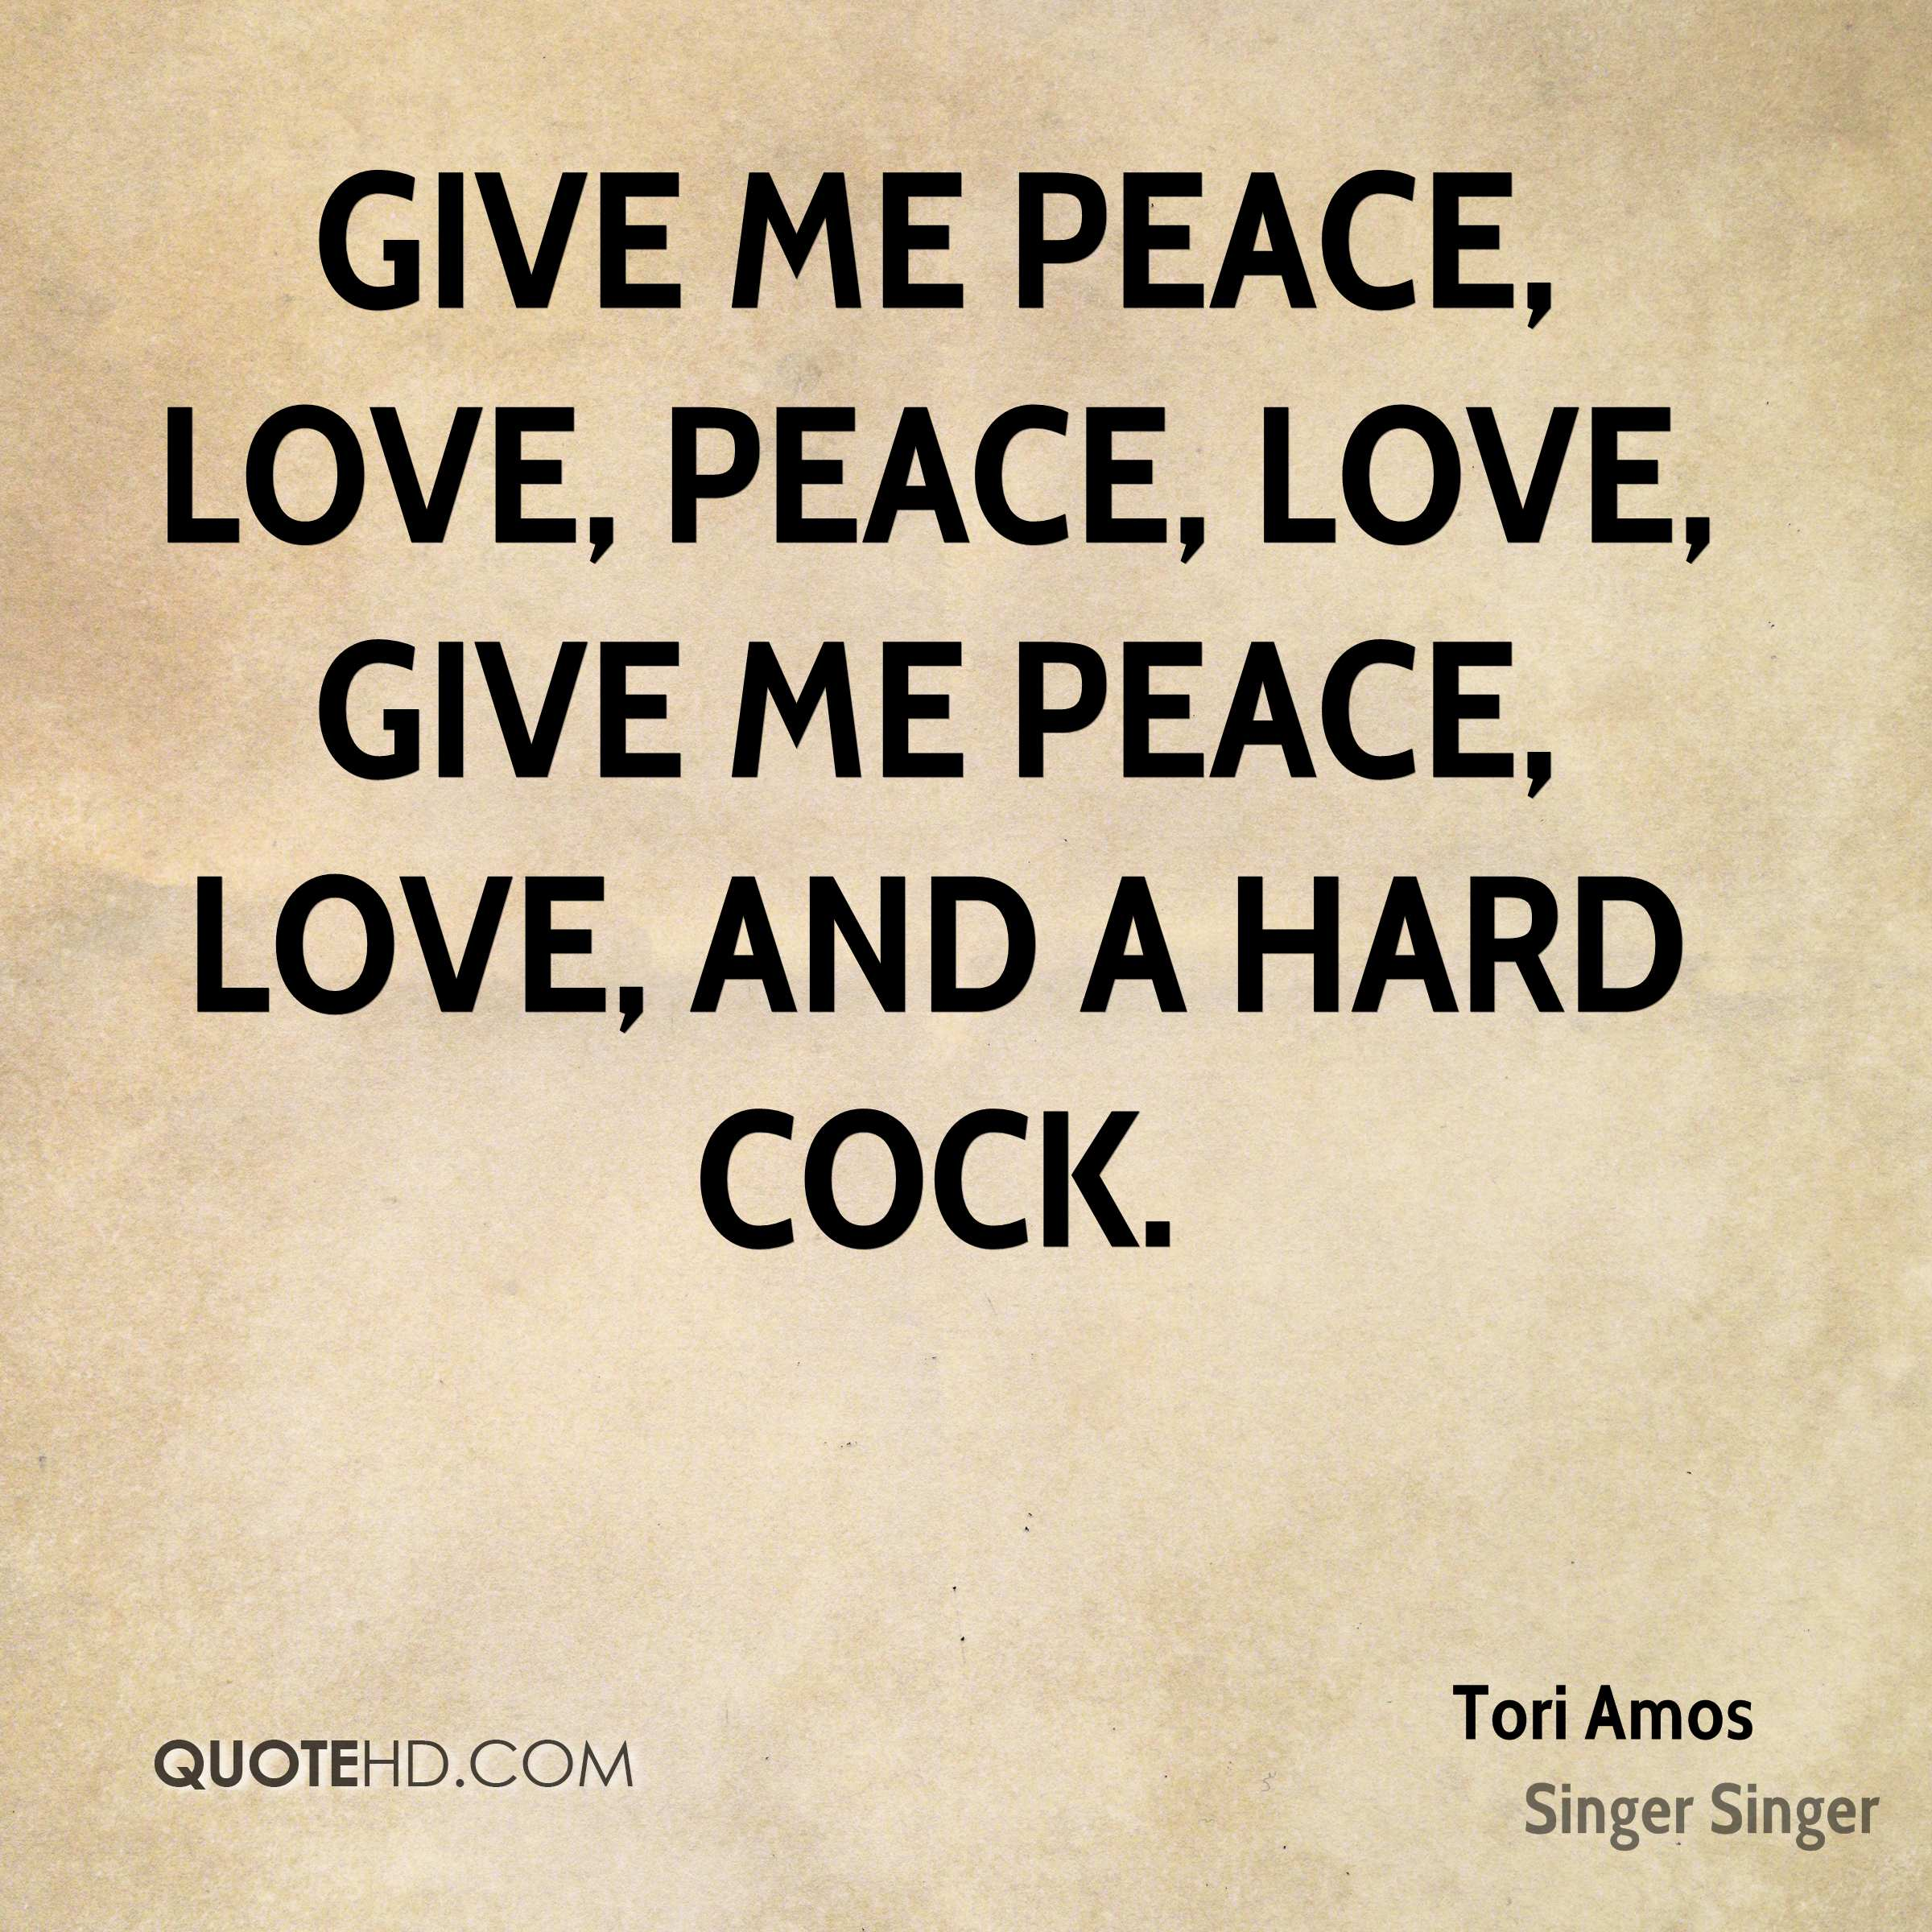 Quote About Peace And Love Best Tori Amos Quotes  Quotehd